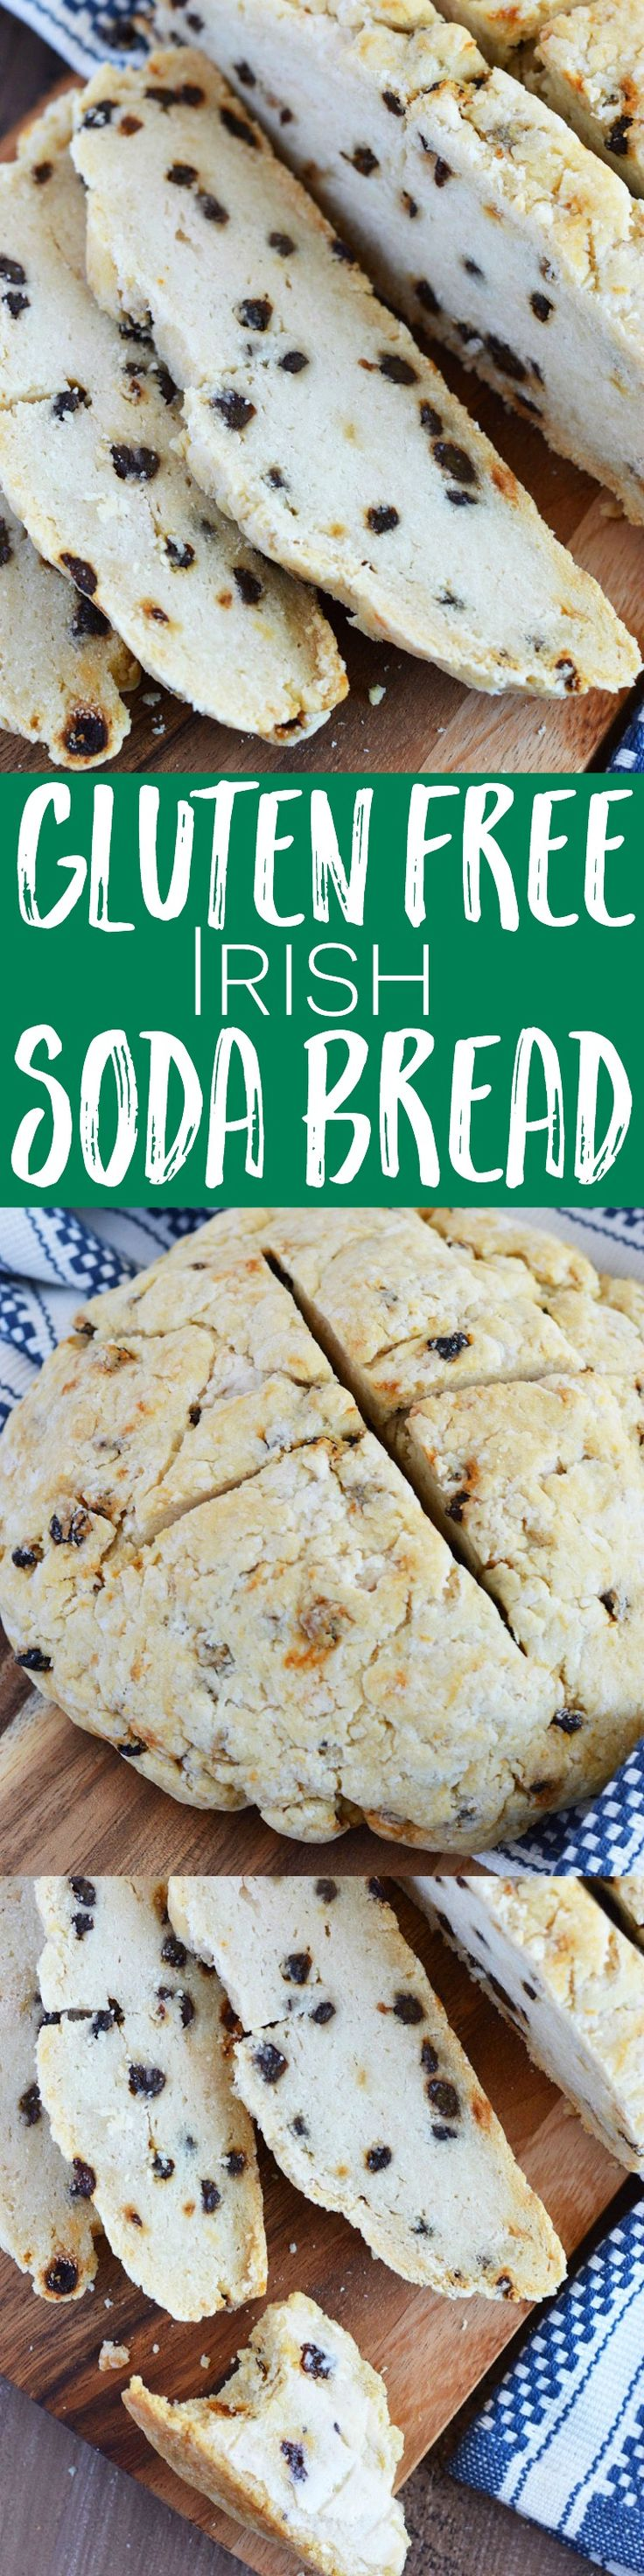 Gluten Free Irish Soda Bread from What The Fork Food Blog | whattheforkfoodblog.com